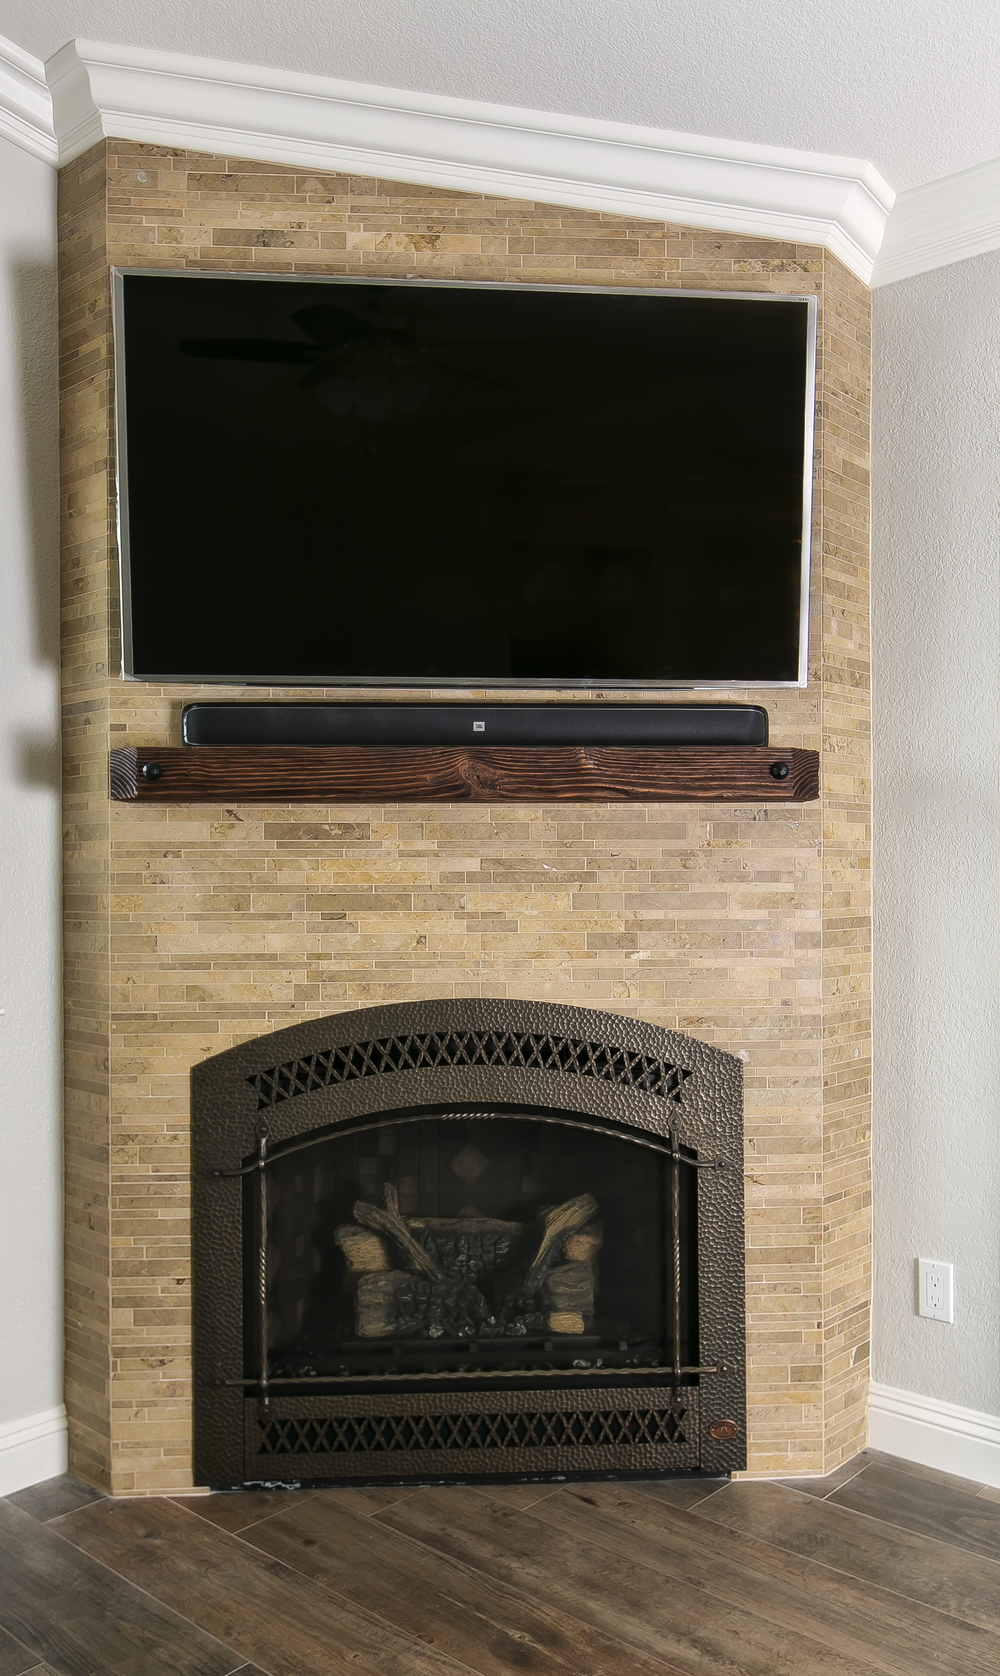 Bolinas fireplace.jpg